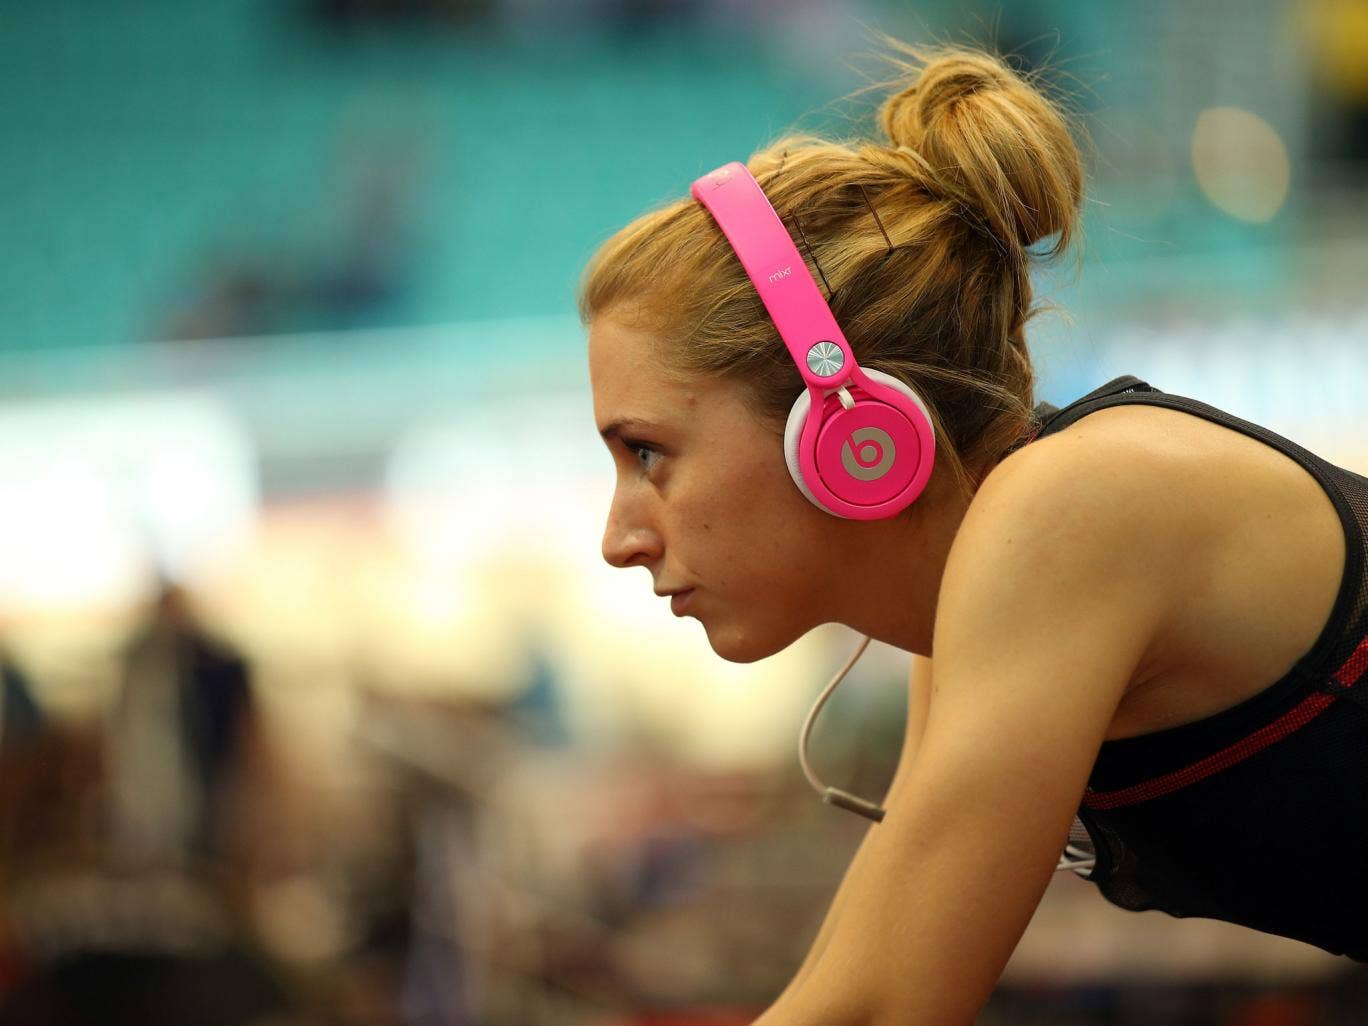 Laura Trott has made clear the 'no-go' areas in terms of image since sporting achievement raised her public profile